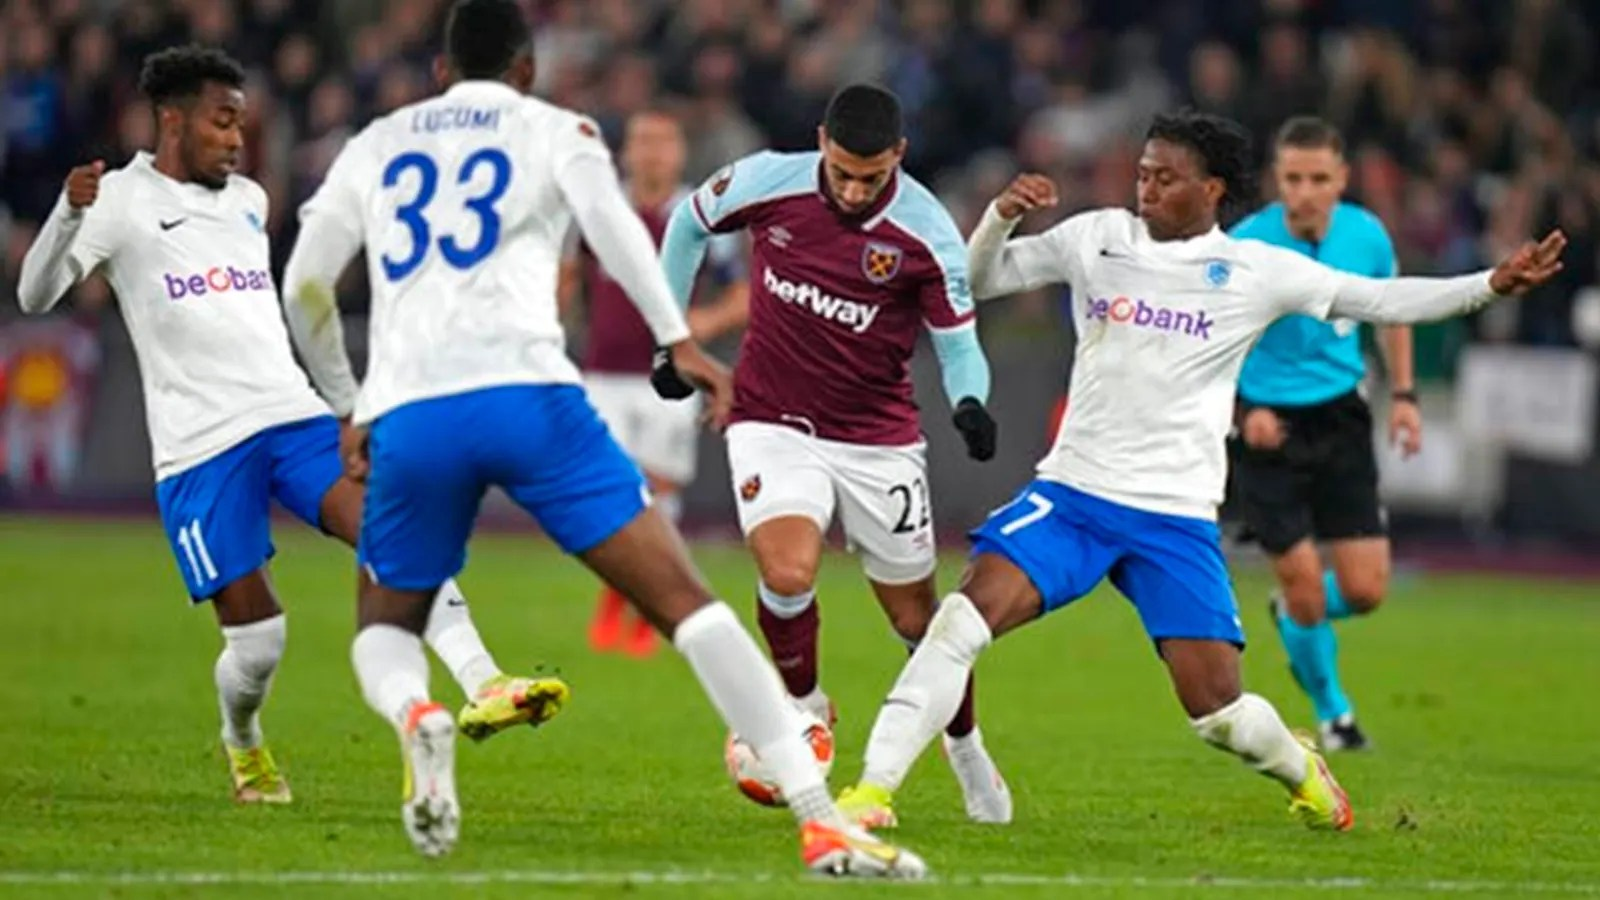 Europa League: West Ham take control in Group H after 3-0 win over Genk